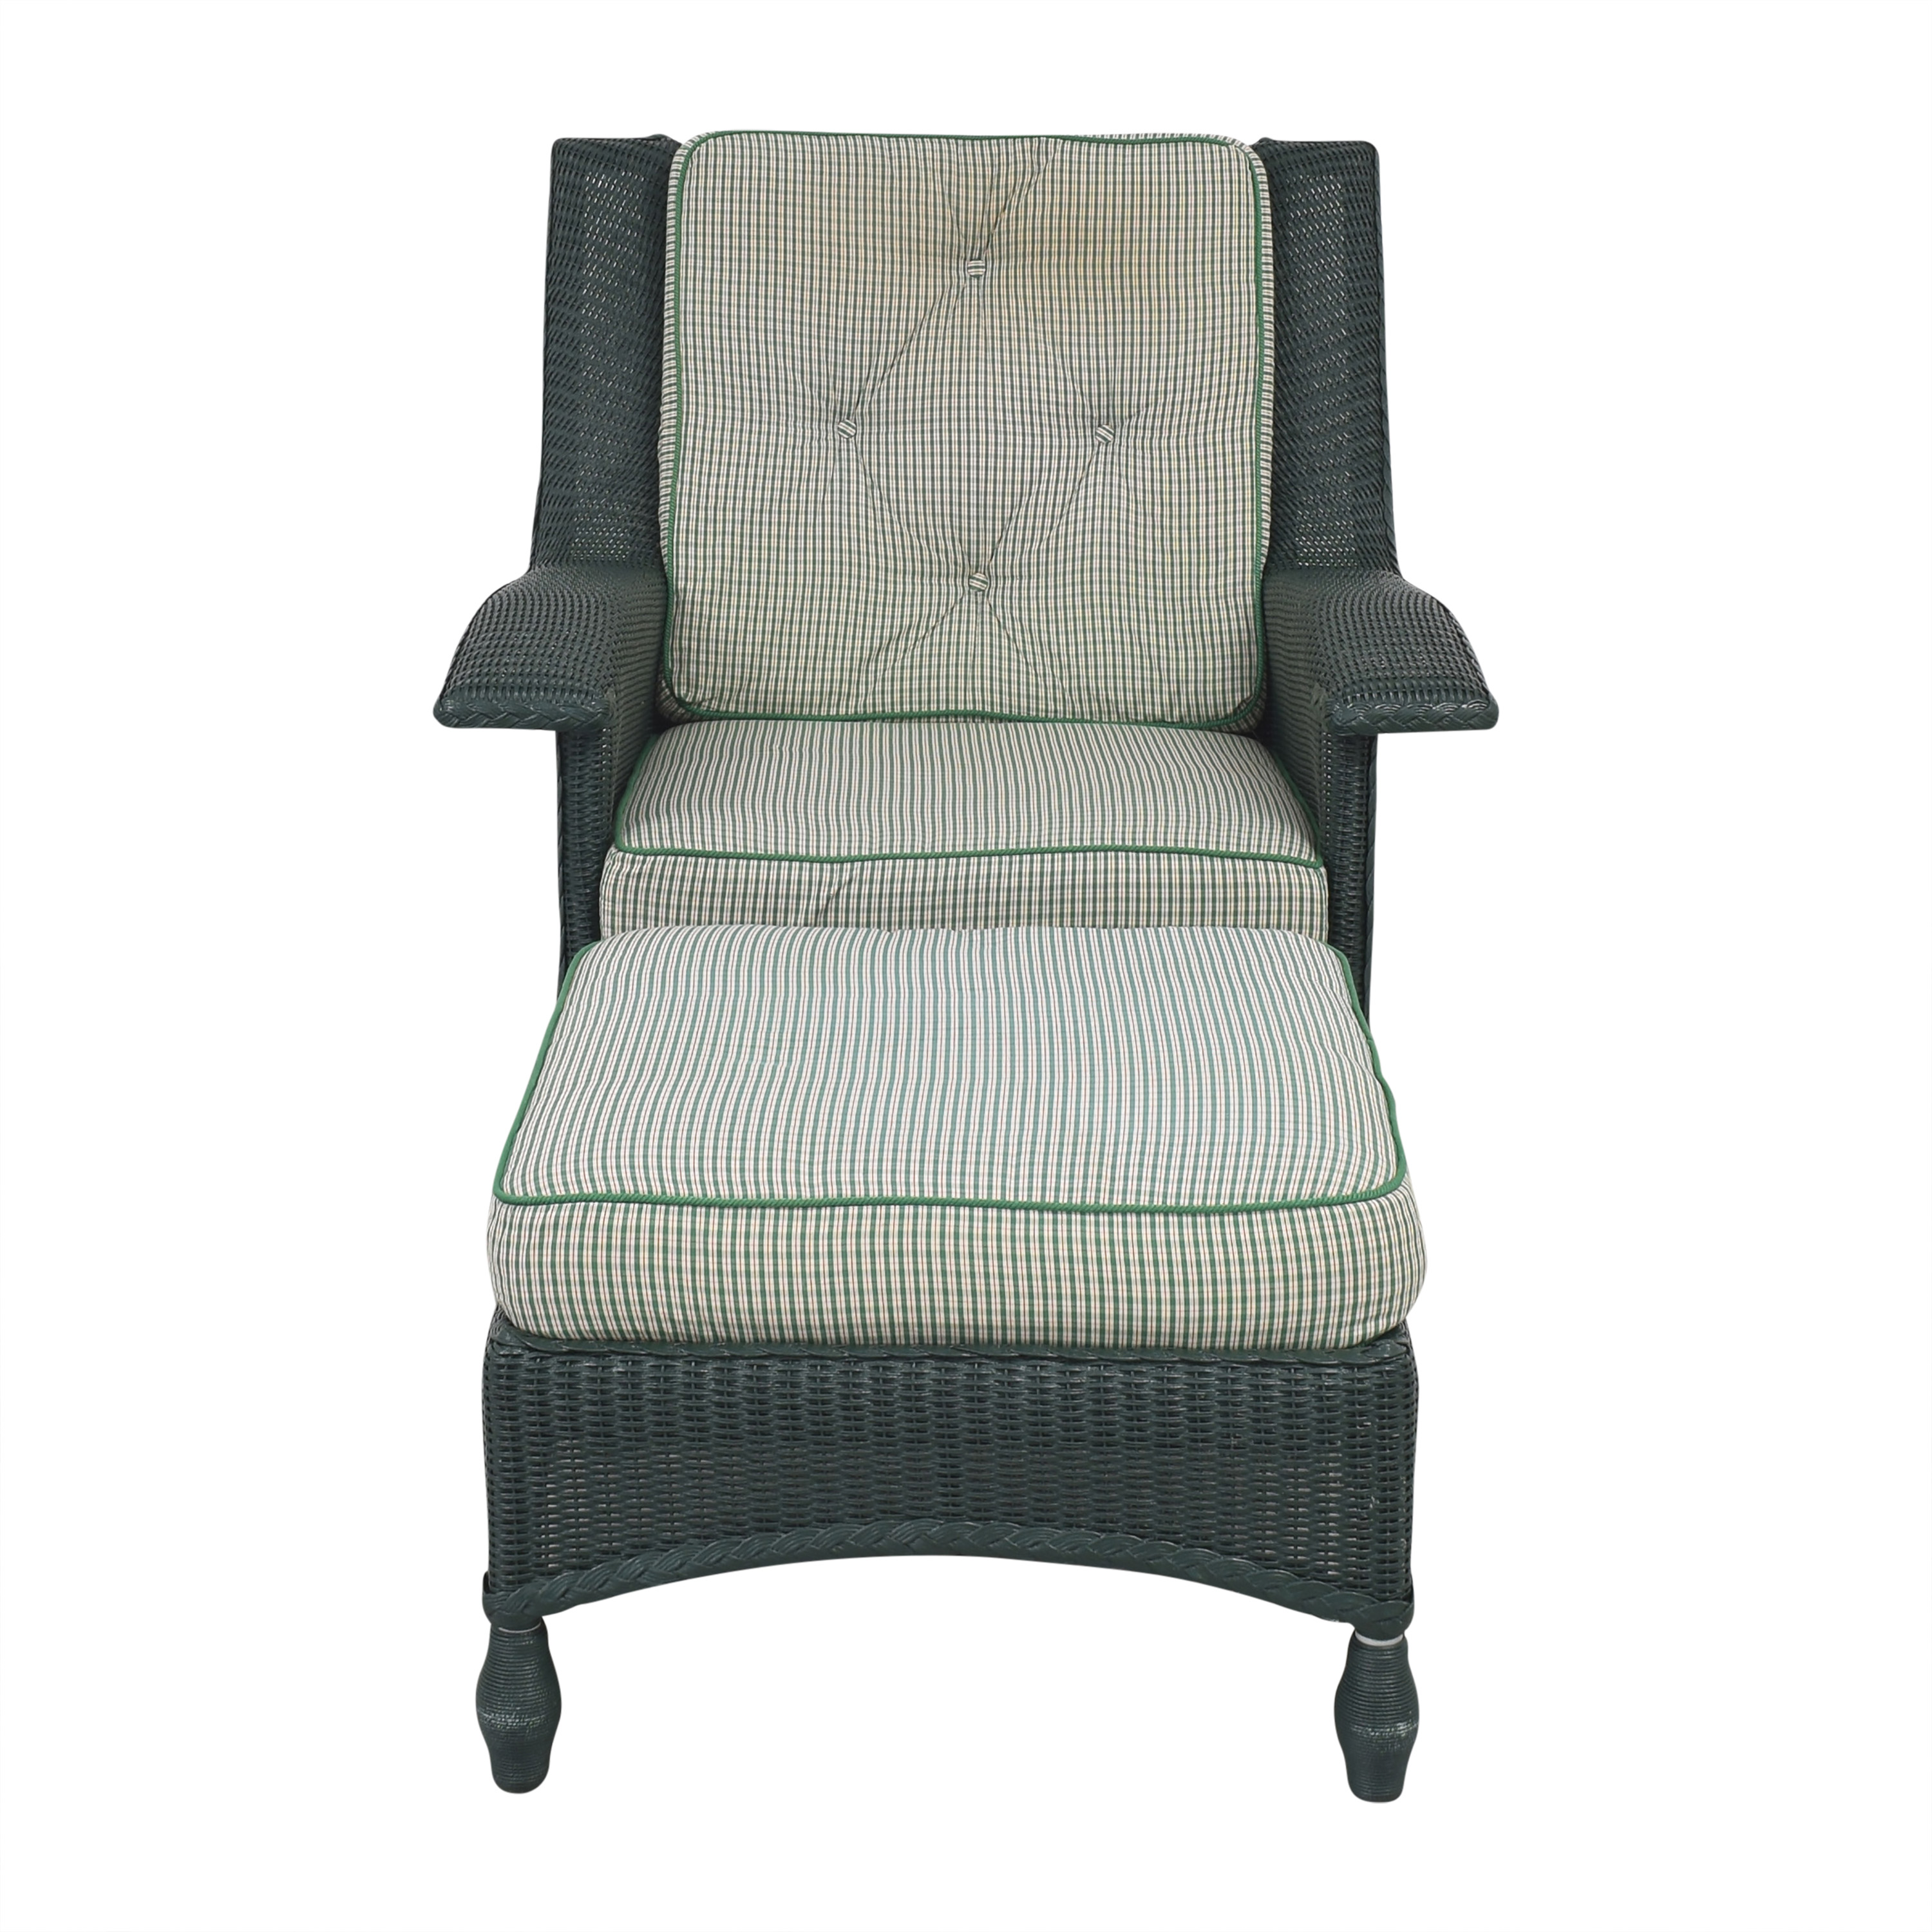 Lloyd Flanders Lloyd Flanders Wicker Chair with Ottoman for sale